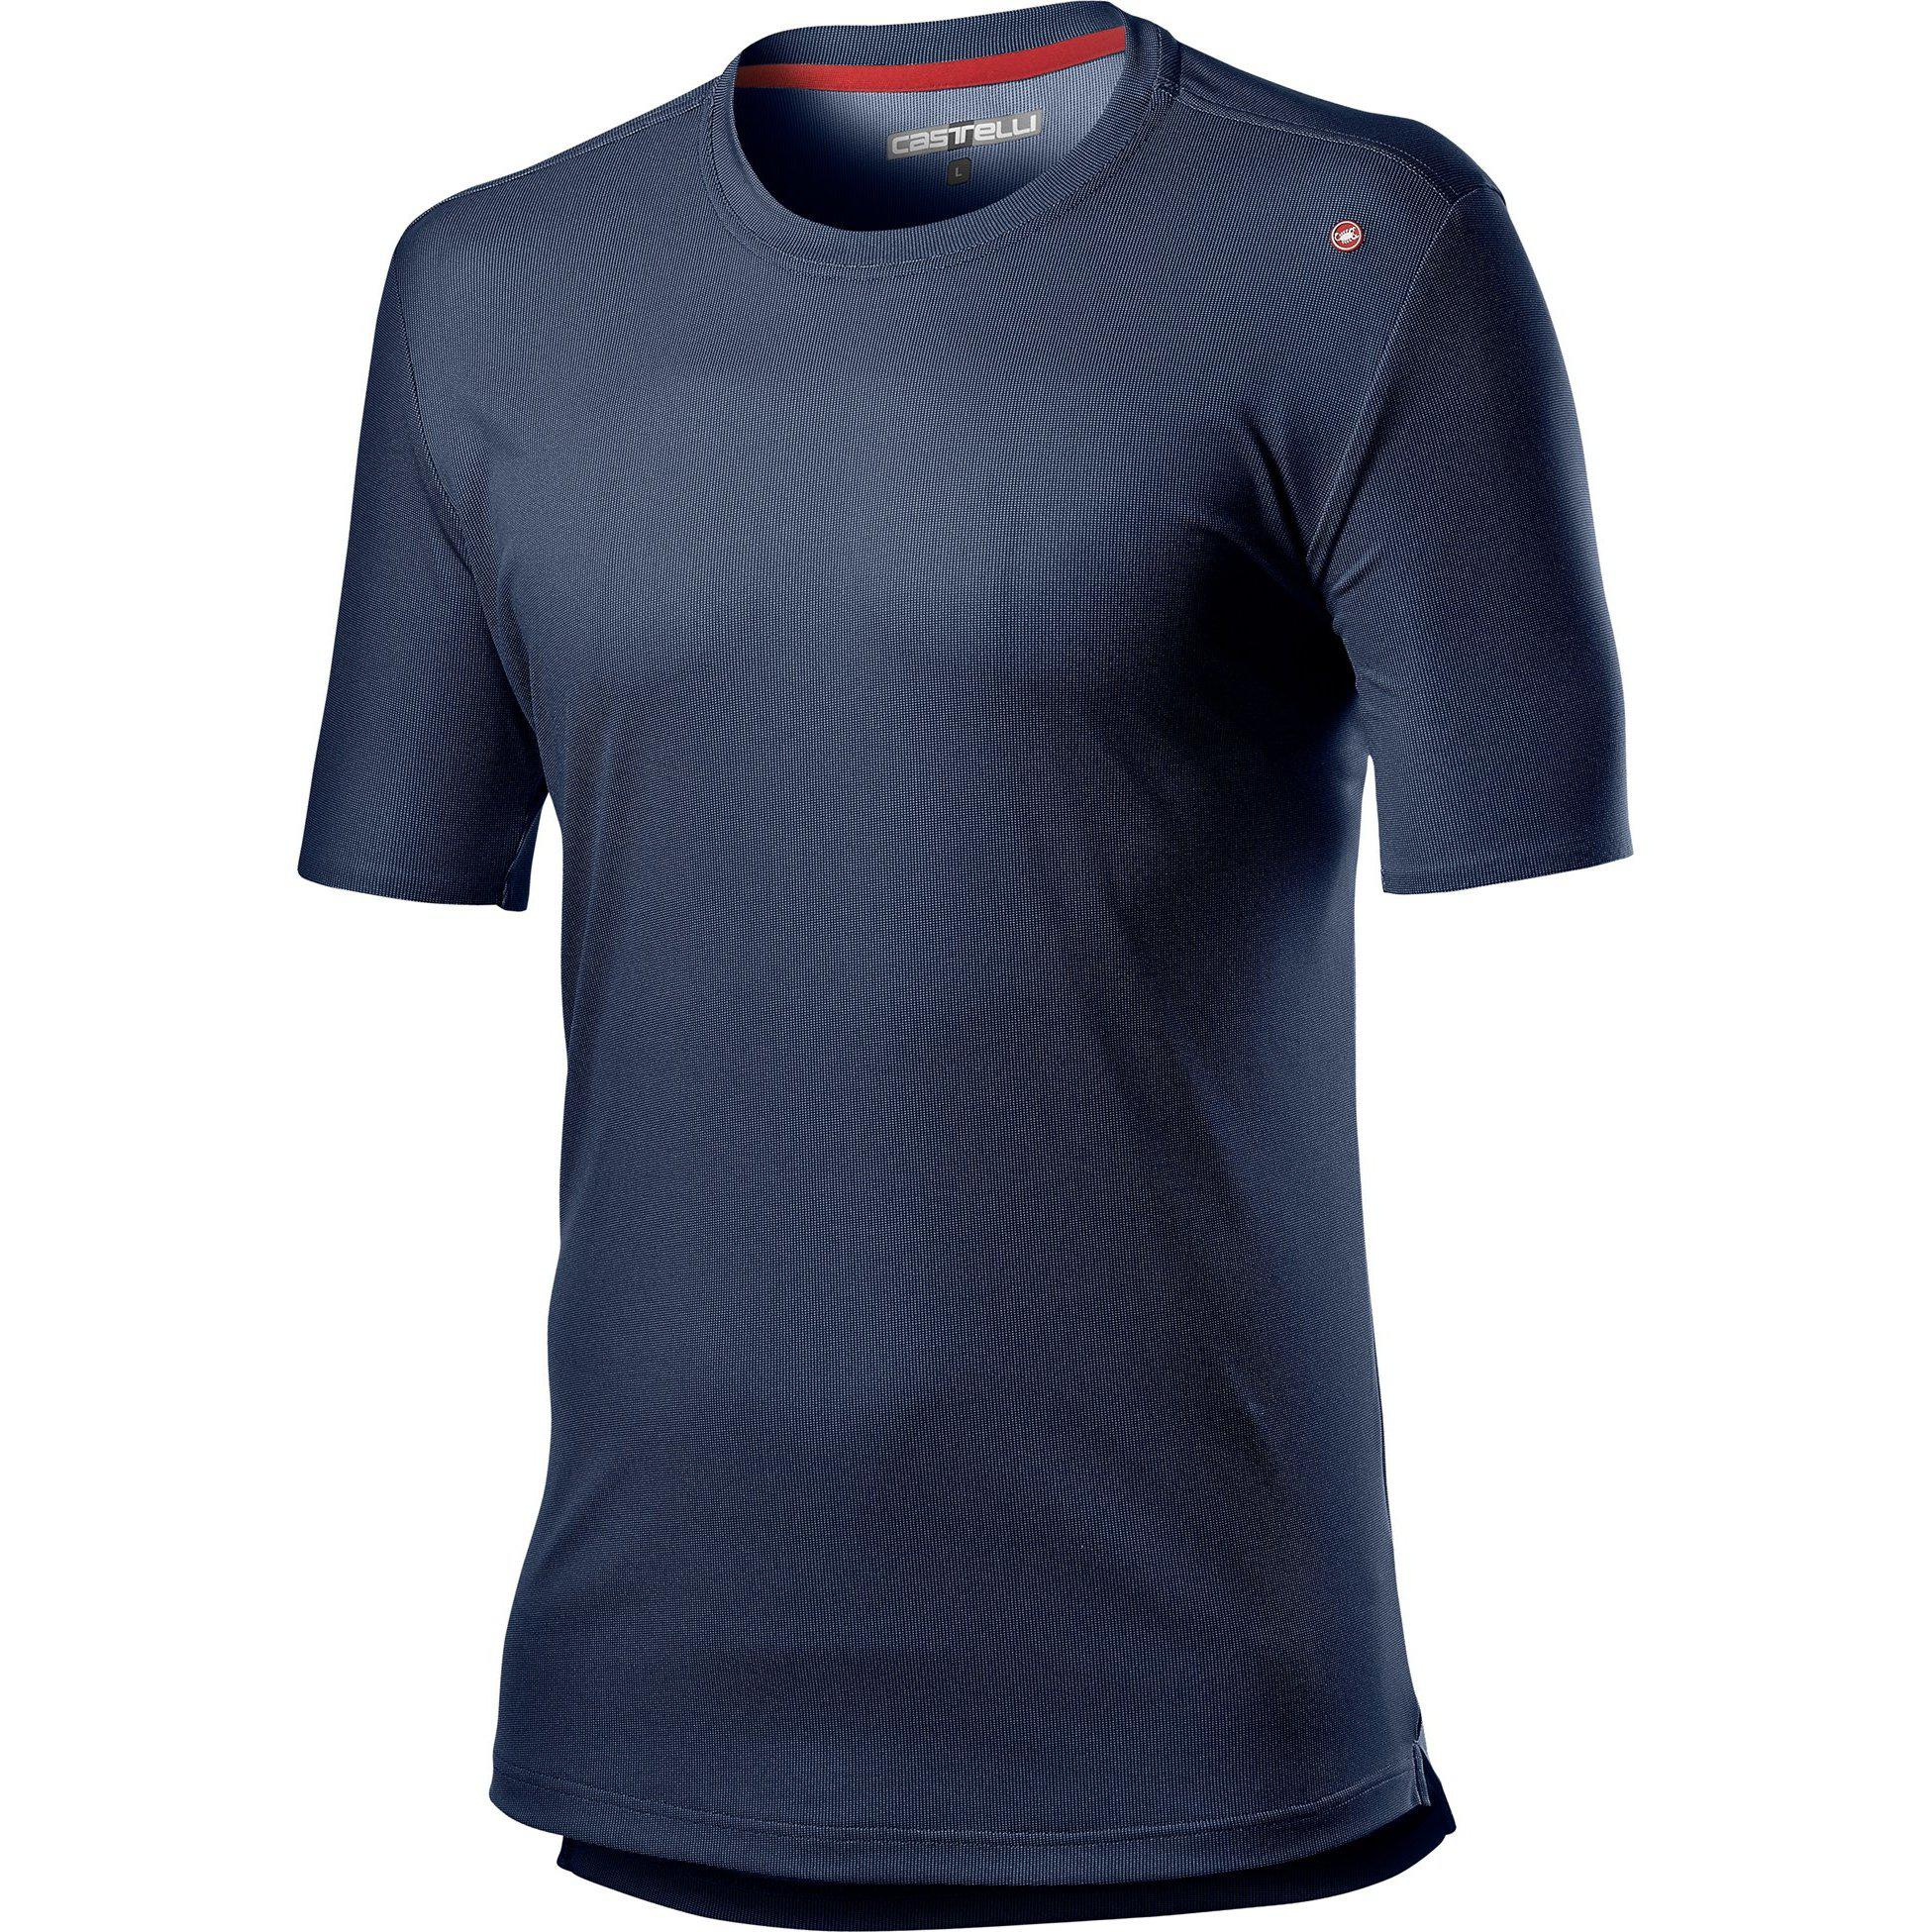 Castelli-Castelli Tech T-Shirt-Dark Infinity Bue-XS-CS201060411-saddleback-elite-performance-cycling